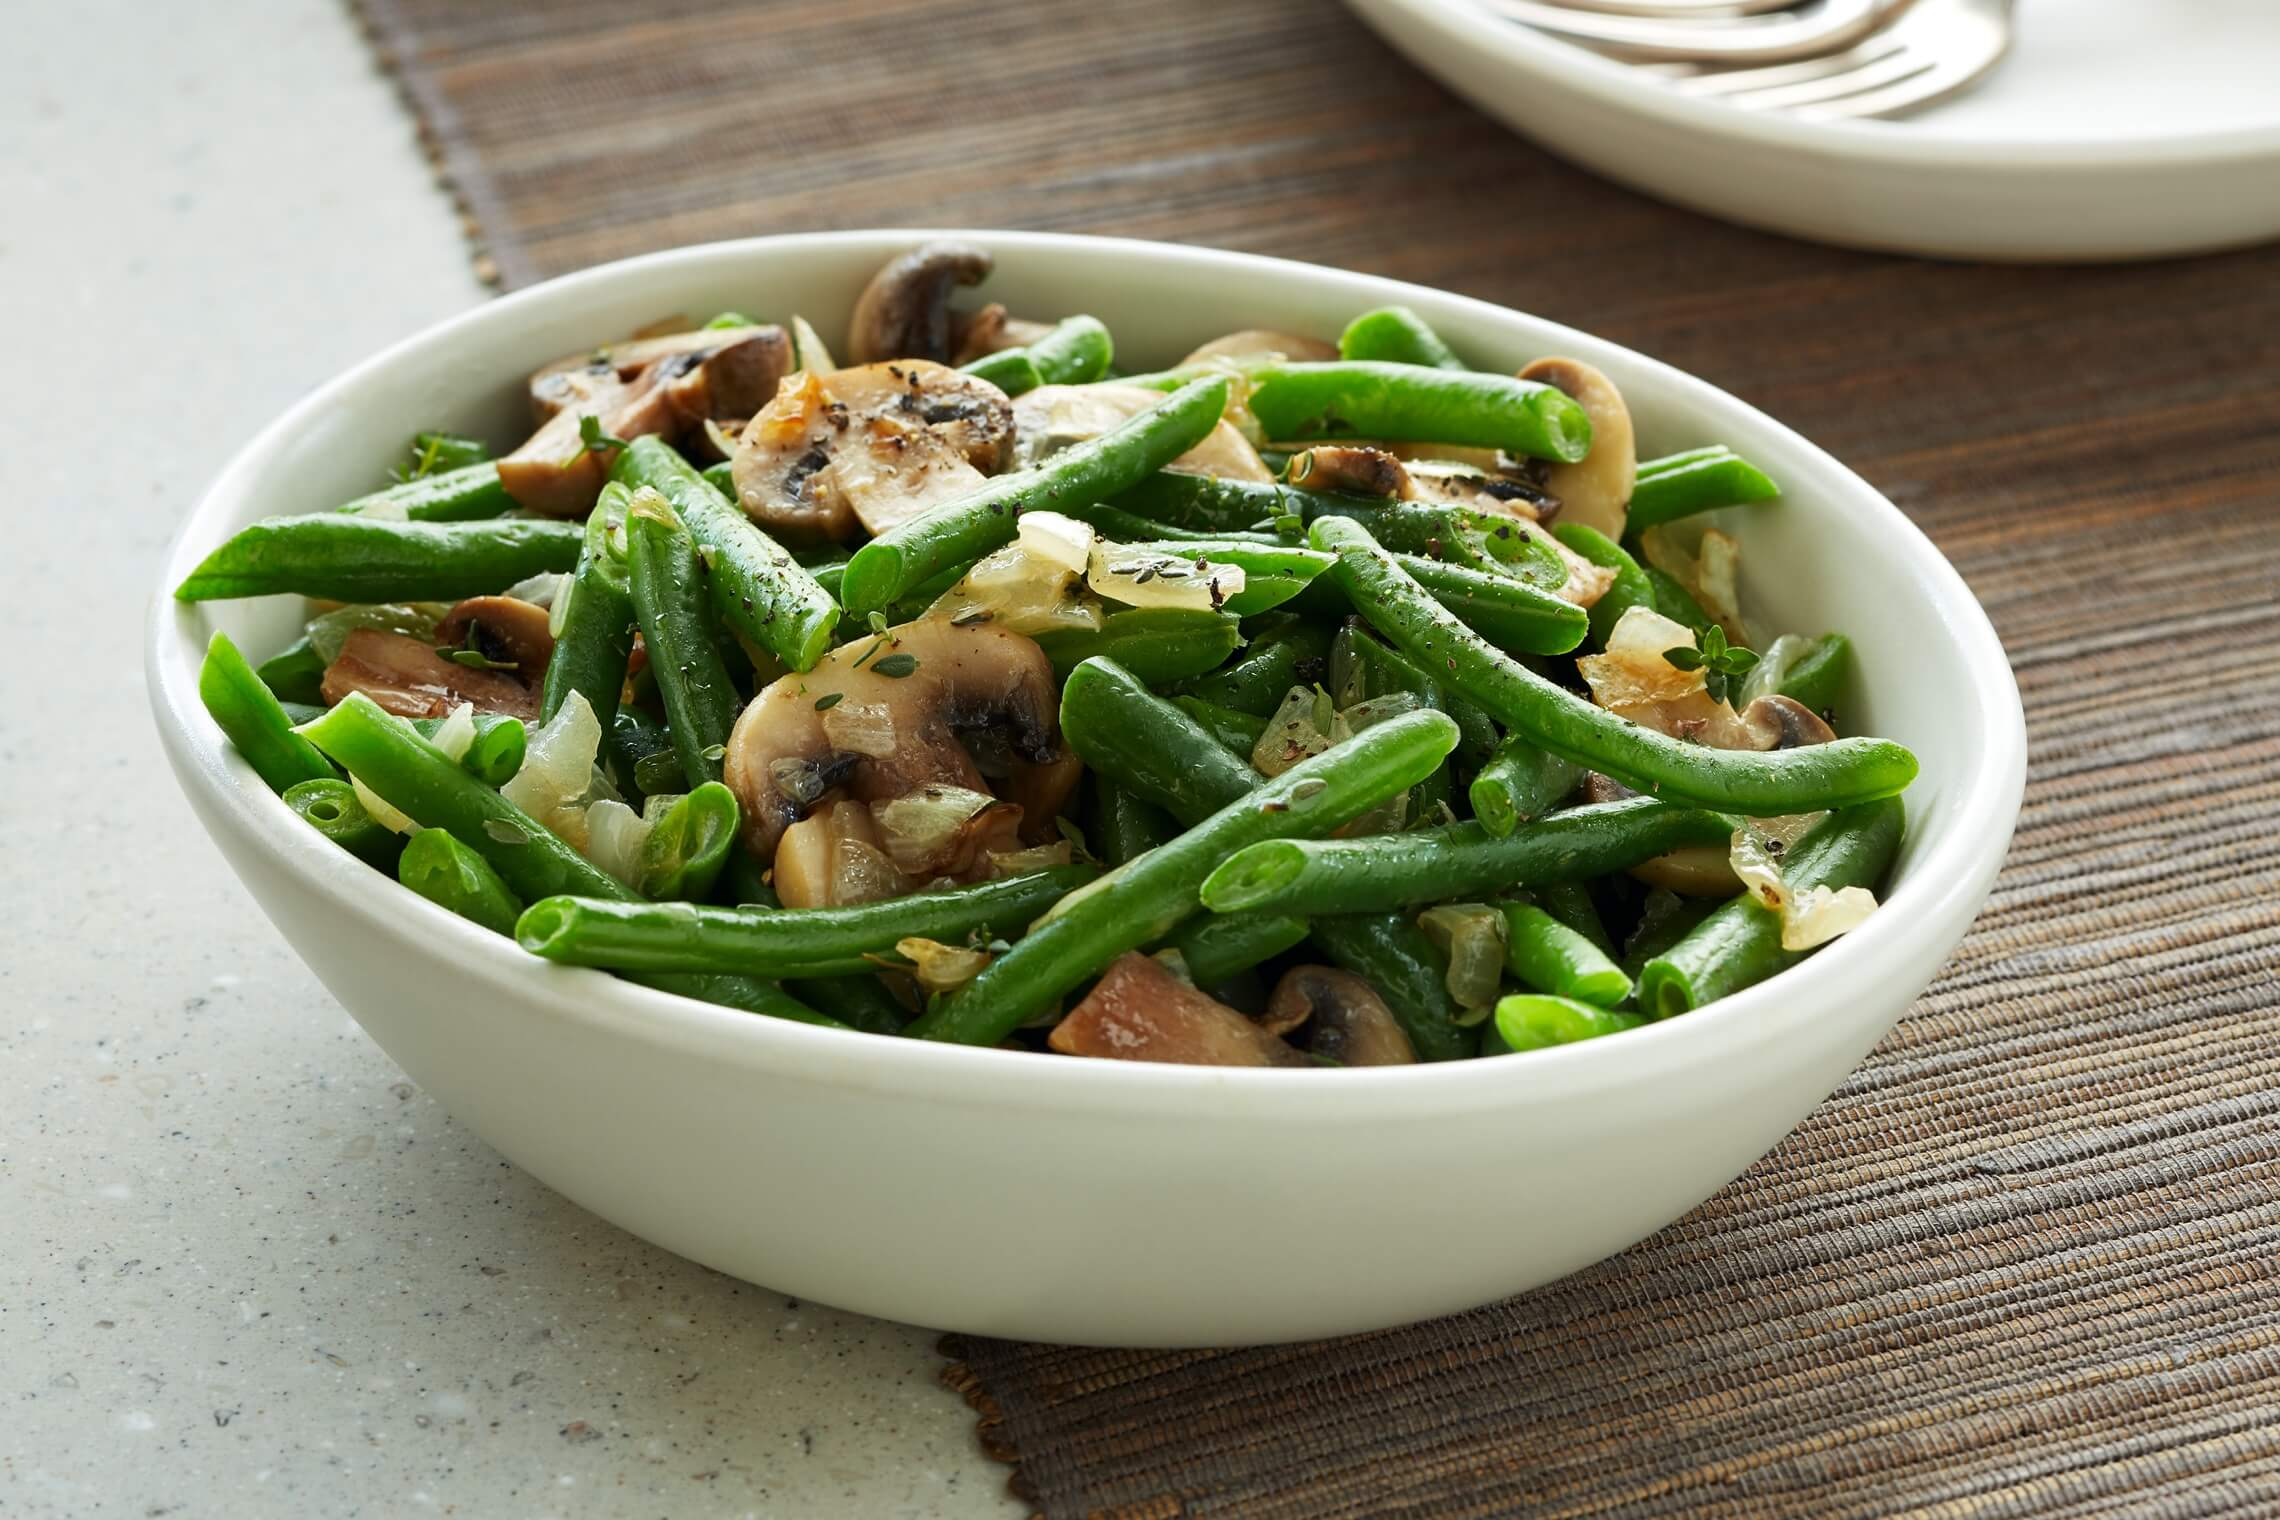 Savory Green Beans and Mushrooms